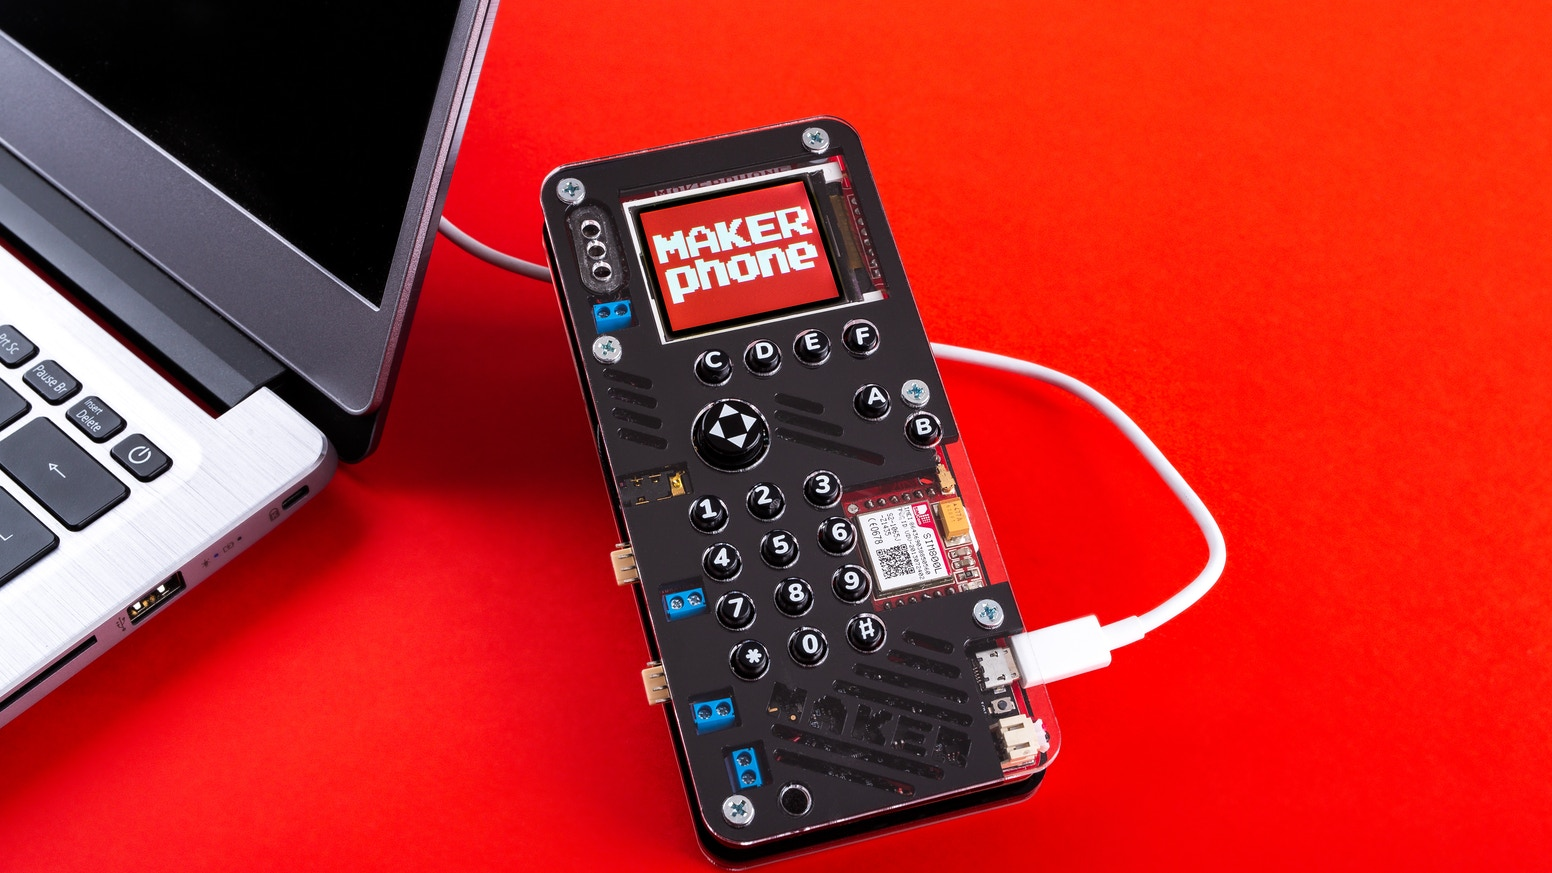 Makerphone An Educational Diy Mobile Phone By Albert Gajak Us Electronic Circuits Tutorials Engineering Hobby Projects Is Designed To Bring Electronics And Programming The Crowd